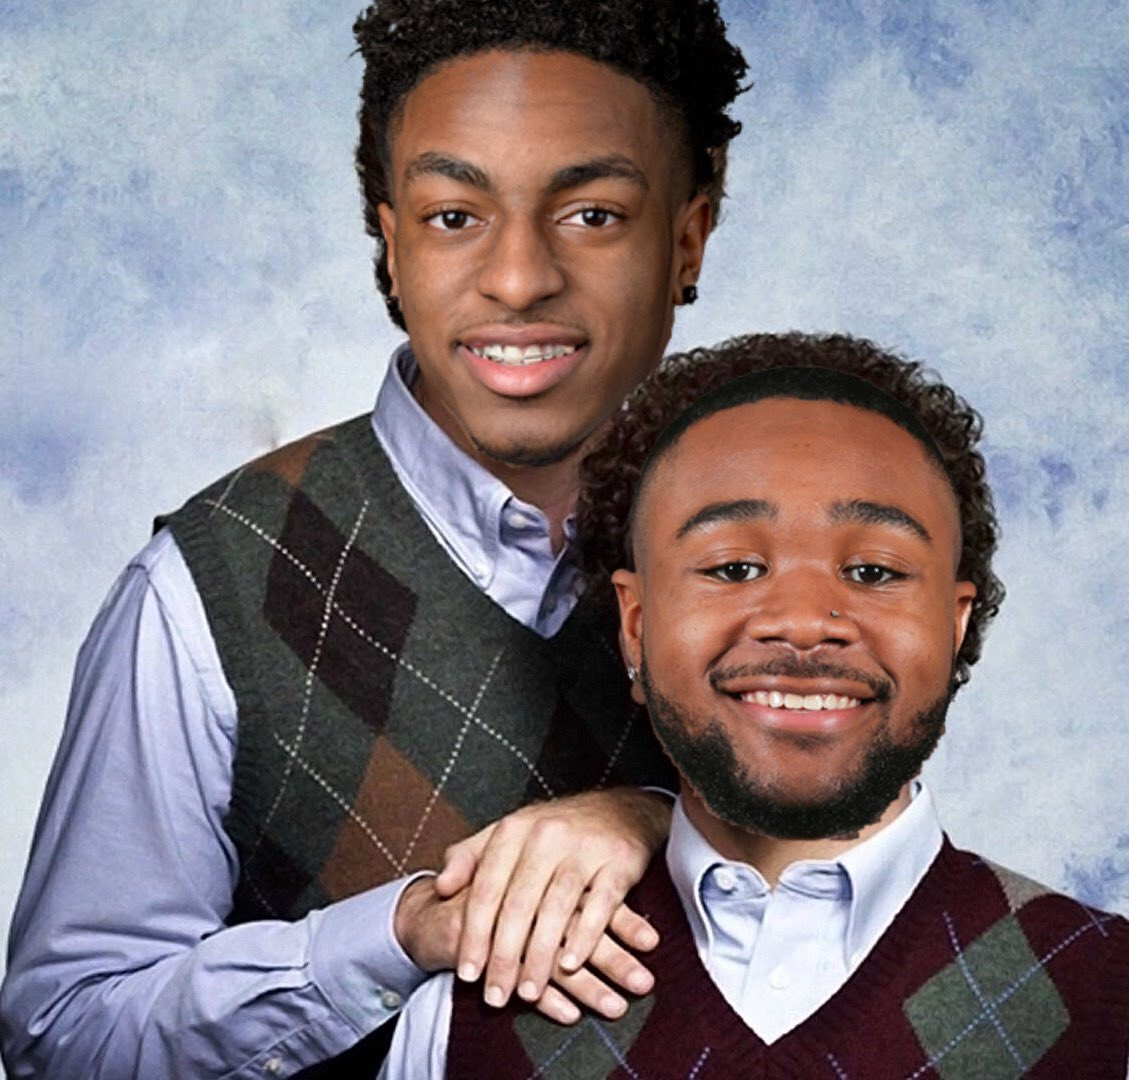 Step Brothers 2: City of Brotherly Love!